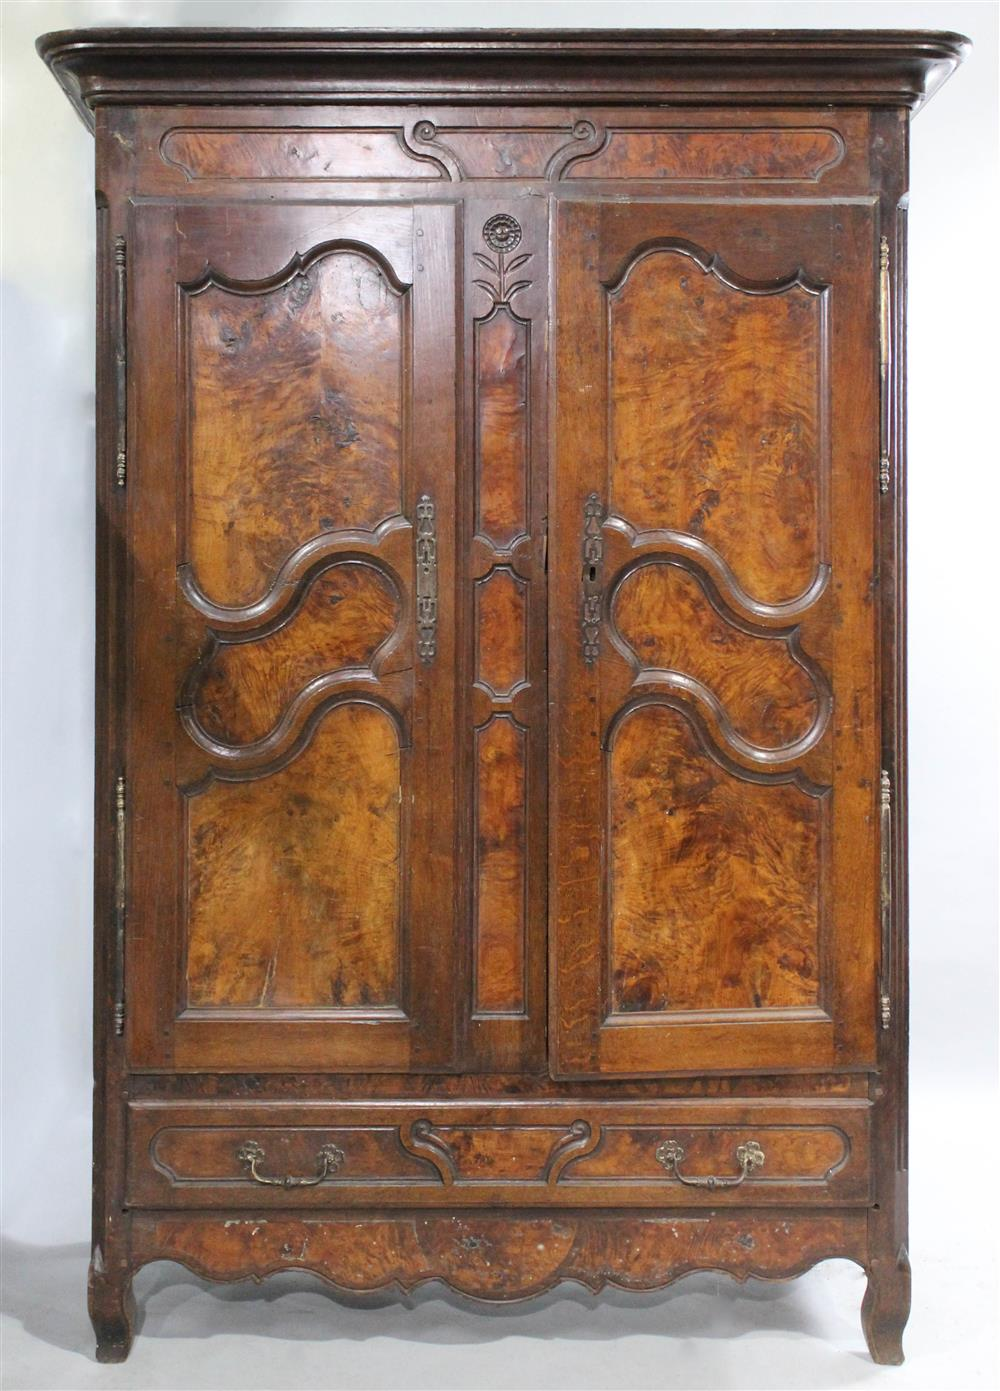 FRENCH PROVINCIAL 18TH CENTURY OAK AND WALNUT